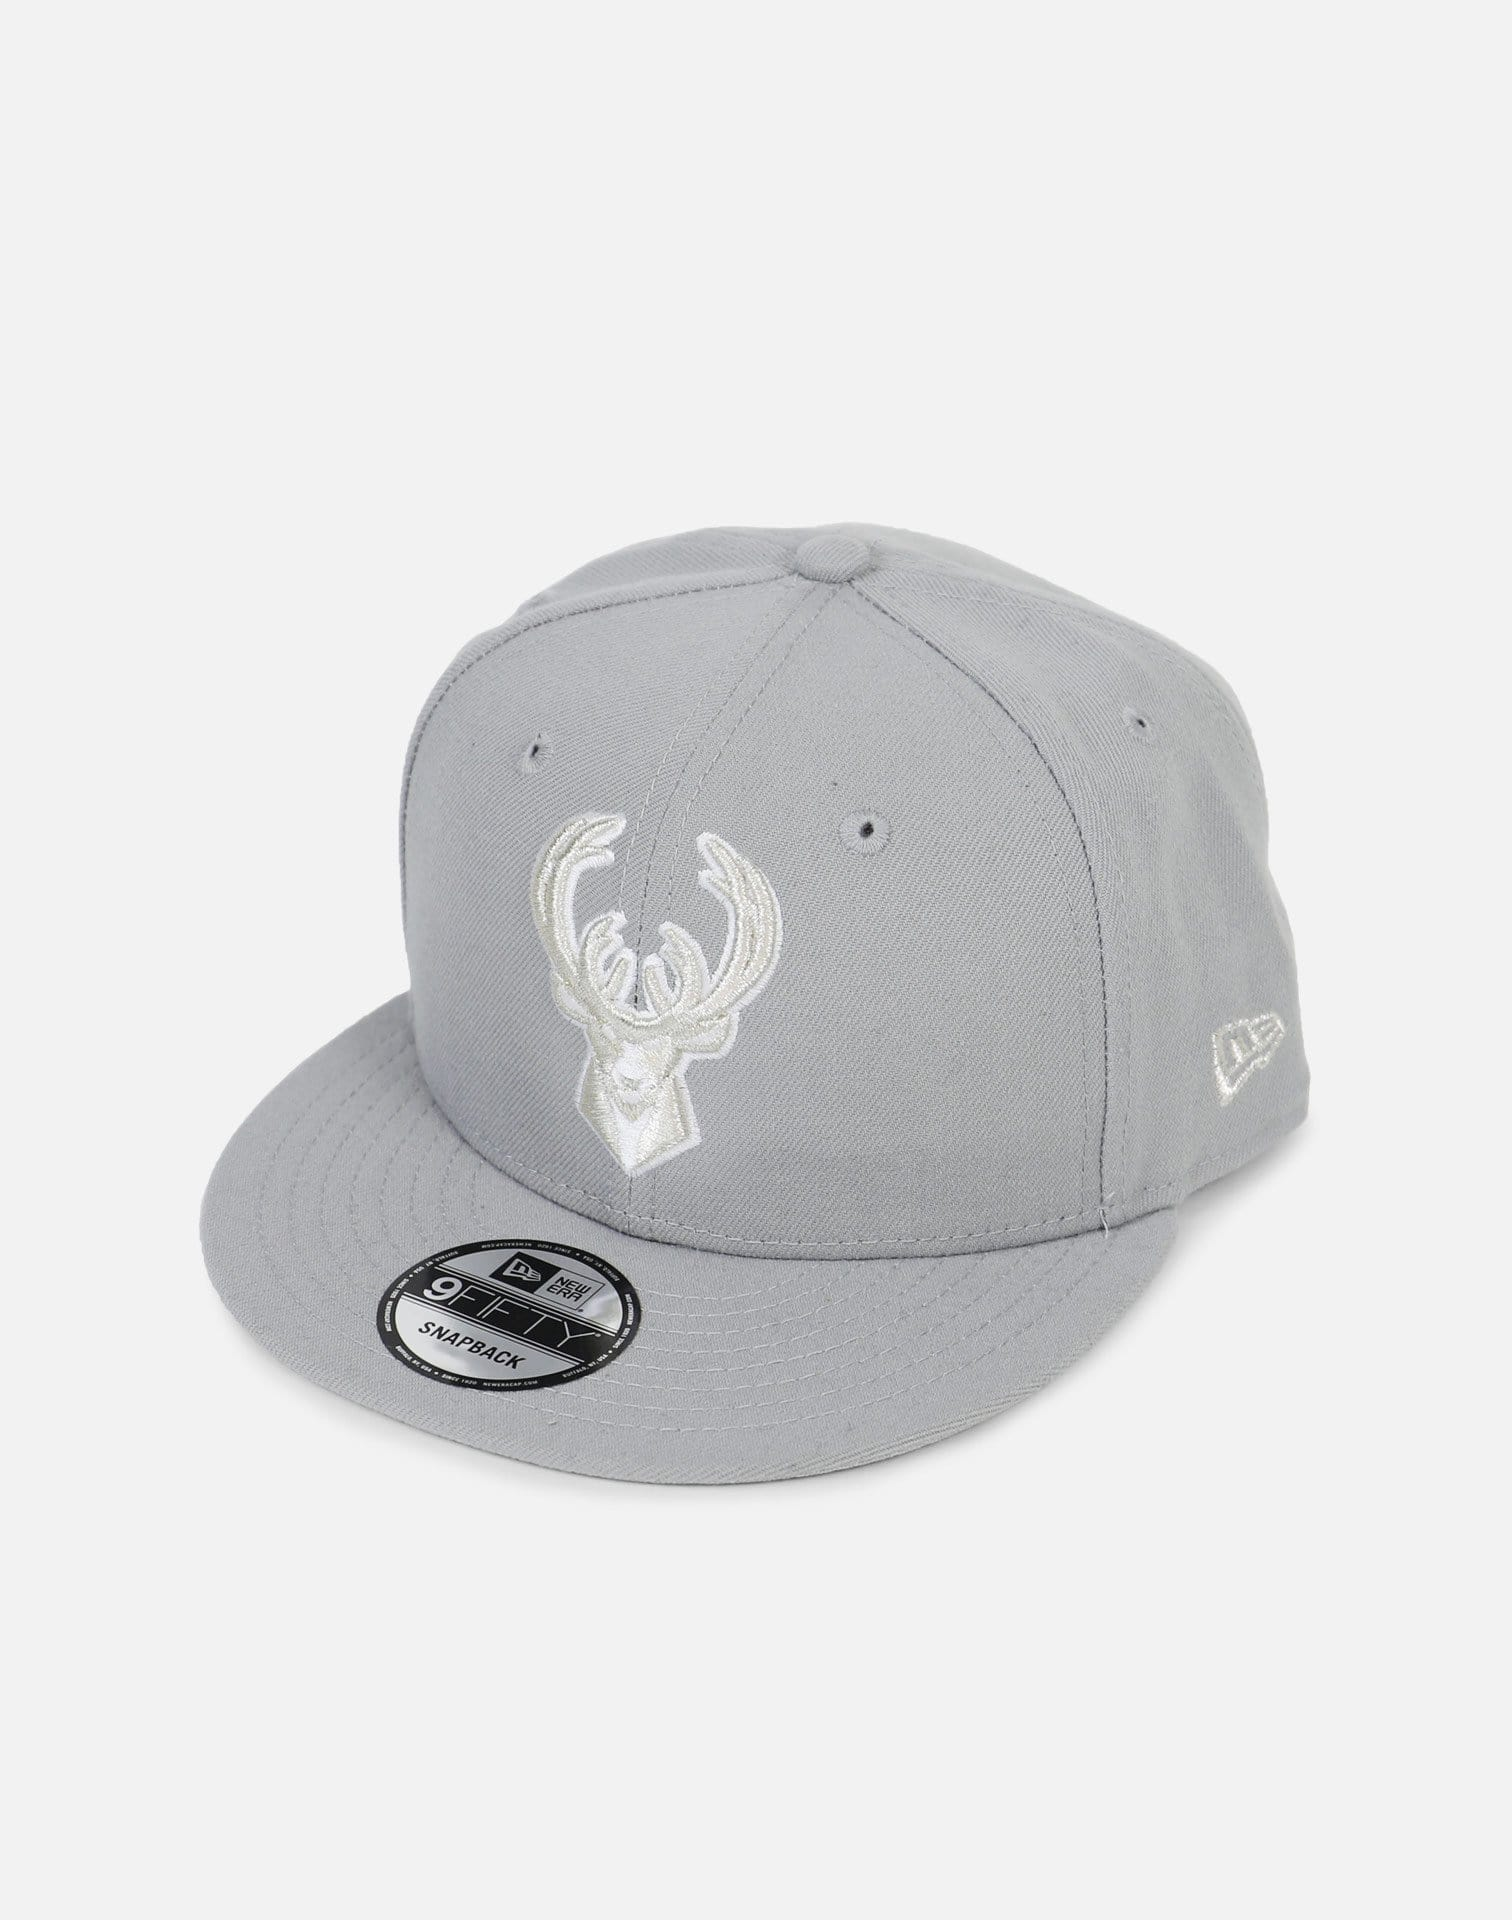 New Era Milwaukee Bucks 'Pure Bucks' Snapback Hat